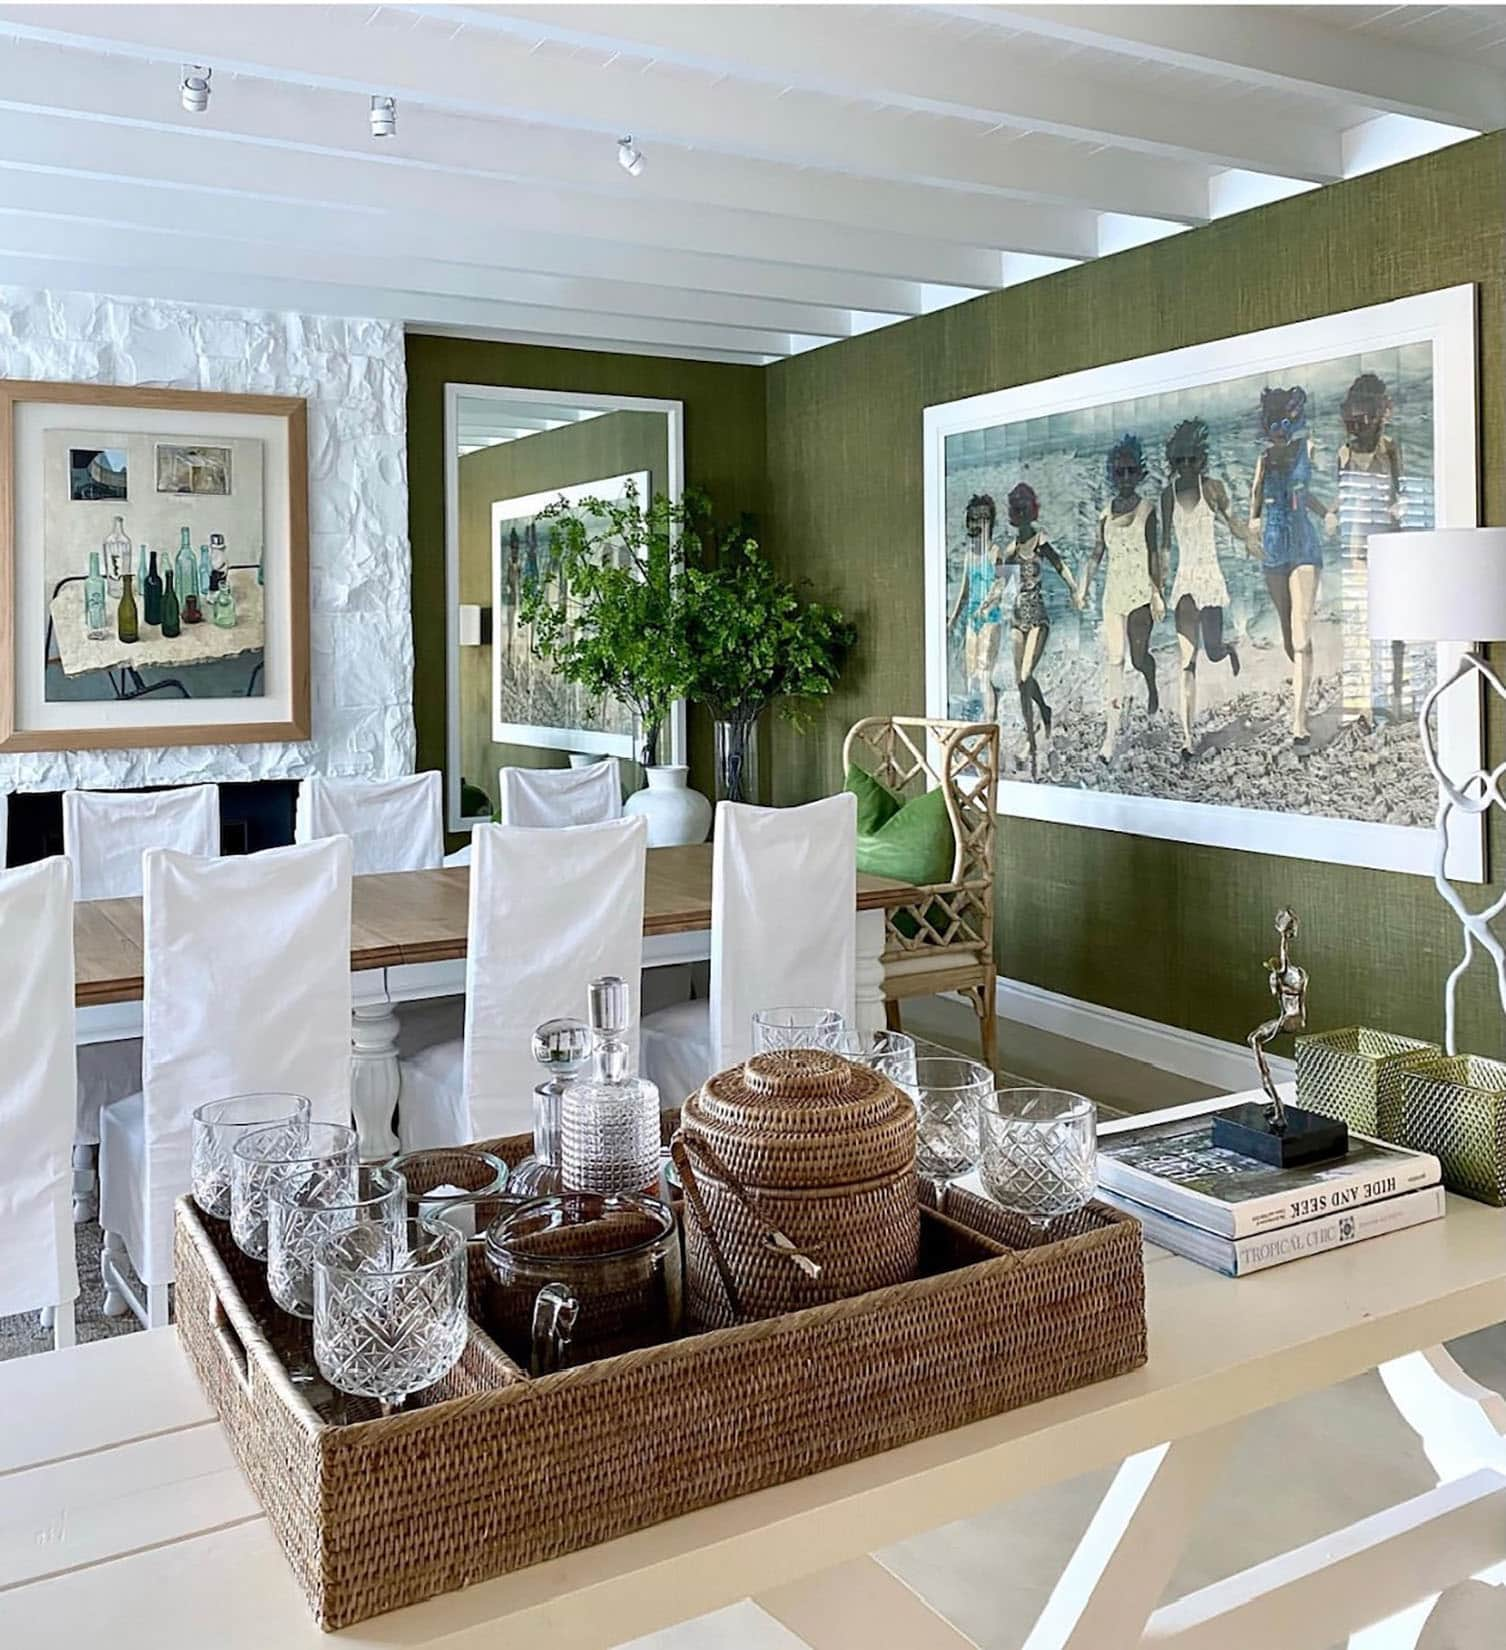 sue bond's dining room on the Western Cape